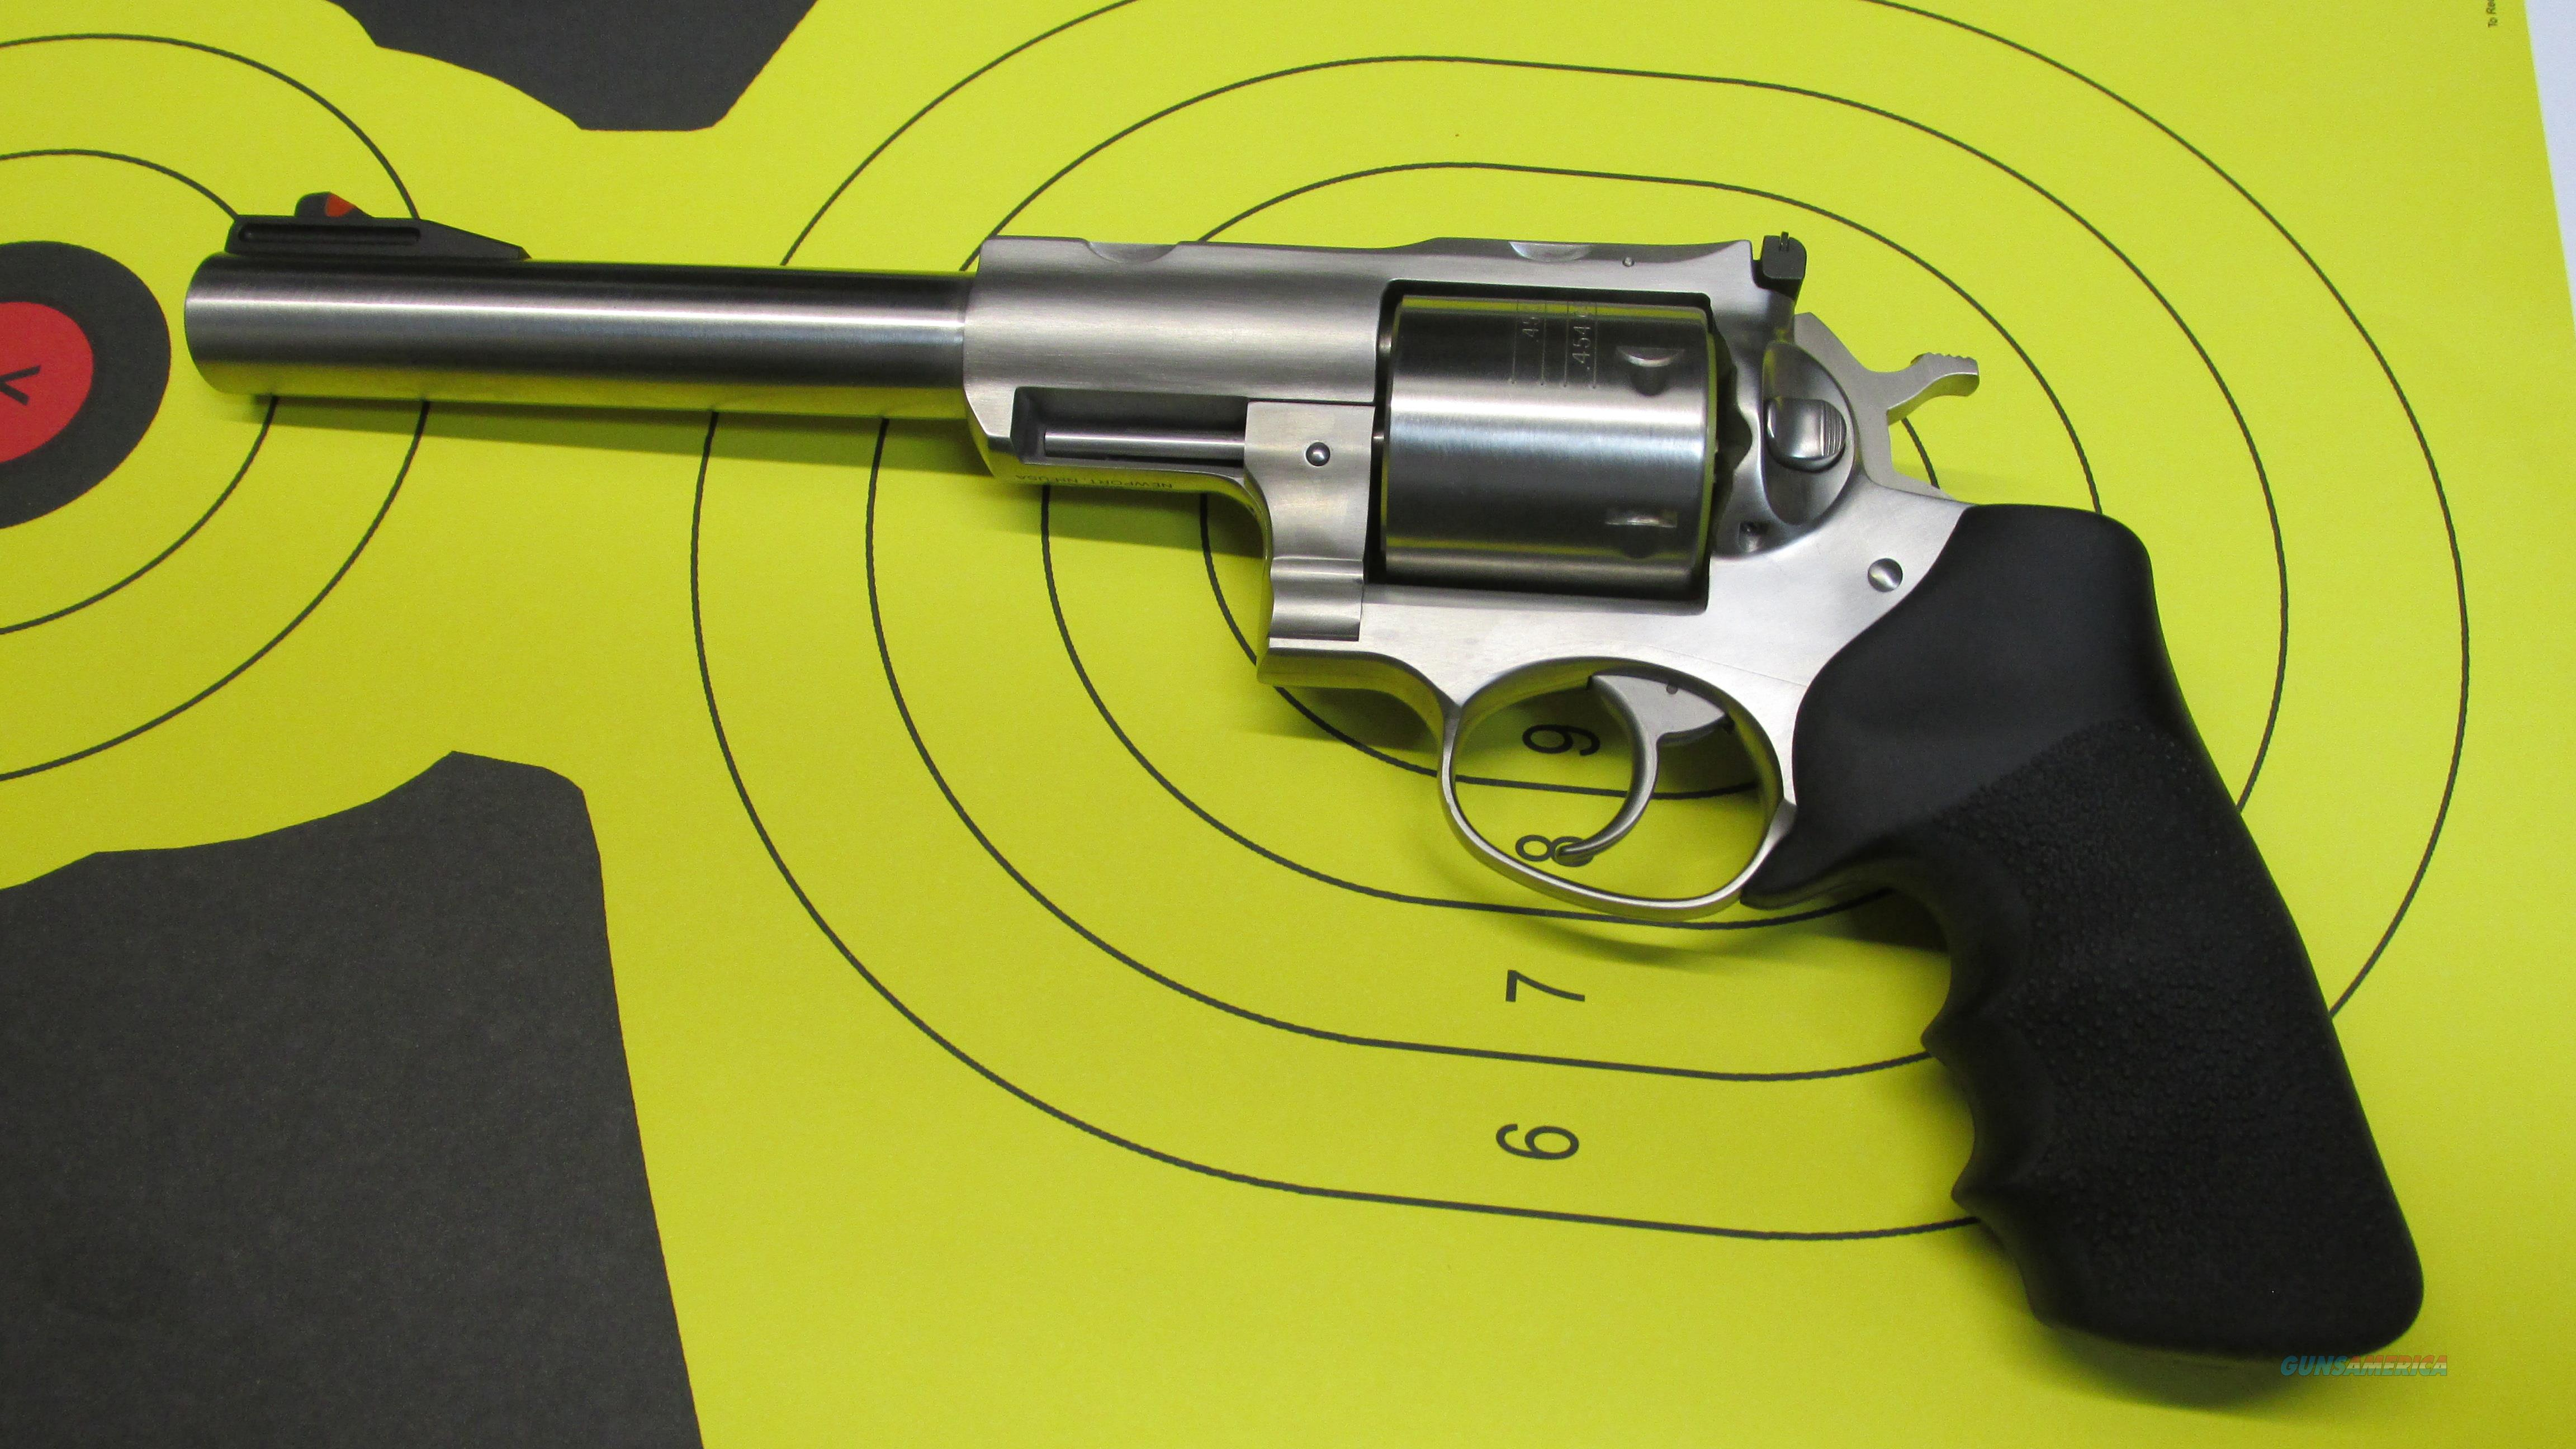 "RUGER SUPER REDHAWK 6 SHOT 454 CASULL REVOLVER, 7.5"" BARREL  Guns > Pistols > Ruger Double Action Revolver > Redhawk Type"